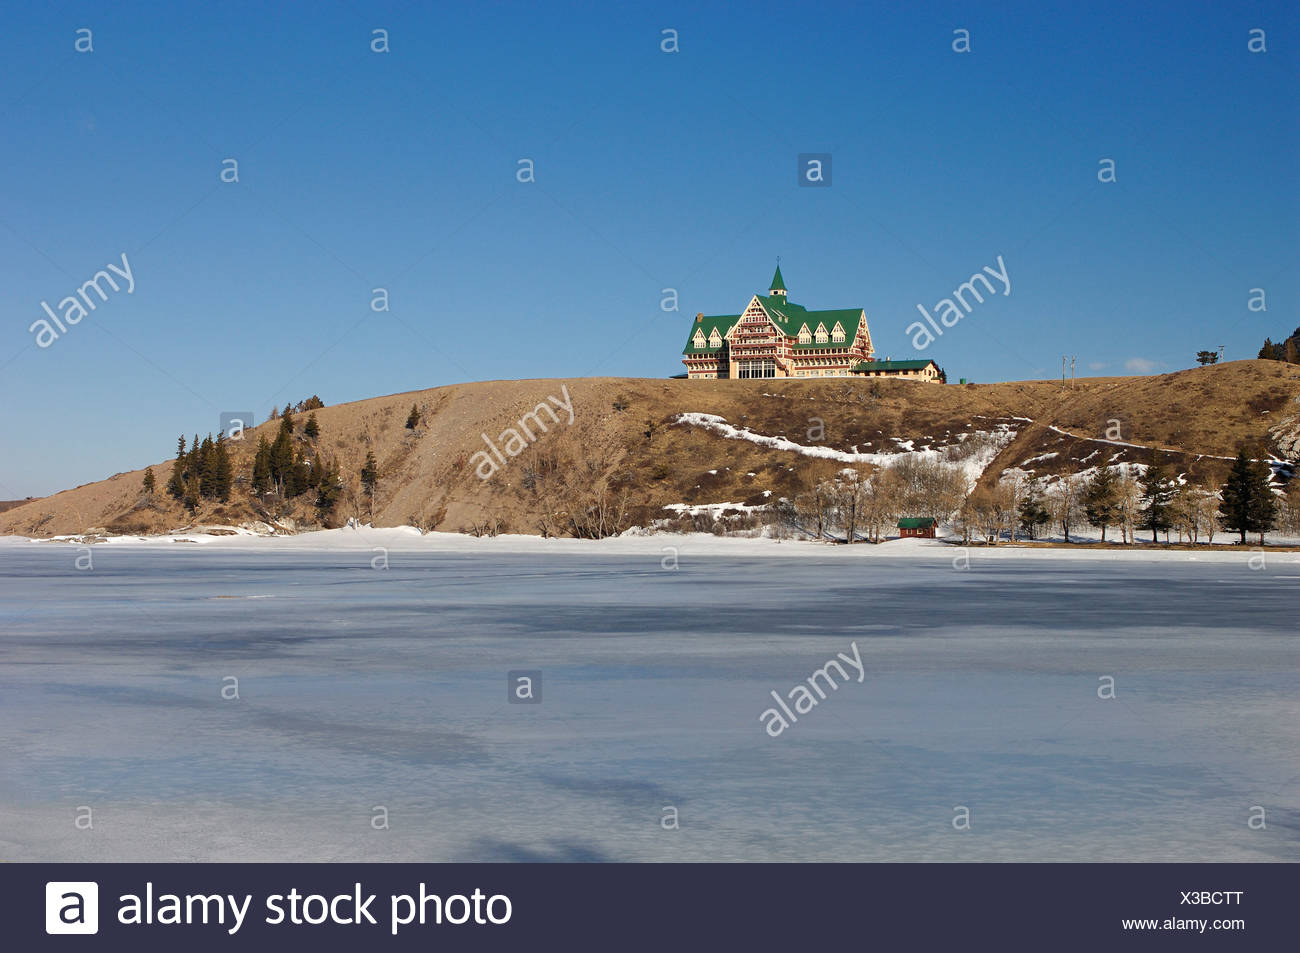 Canada Waterton Alberta Winter Prince Of Wales Hotel Waterton Lakes National Park Landscape Scenery Lake Snow Cold Mountains - Stock Image